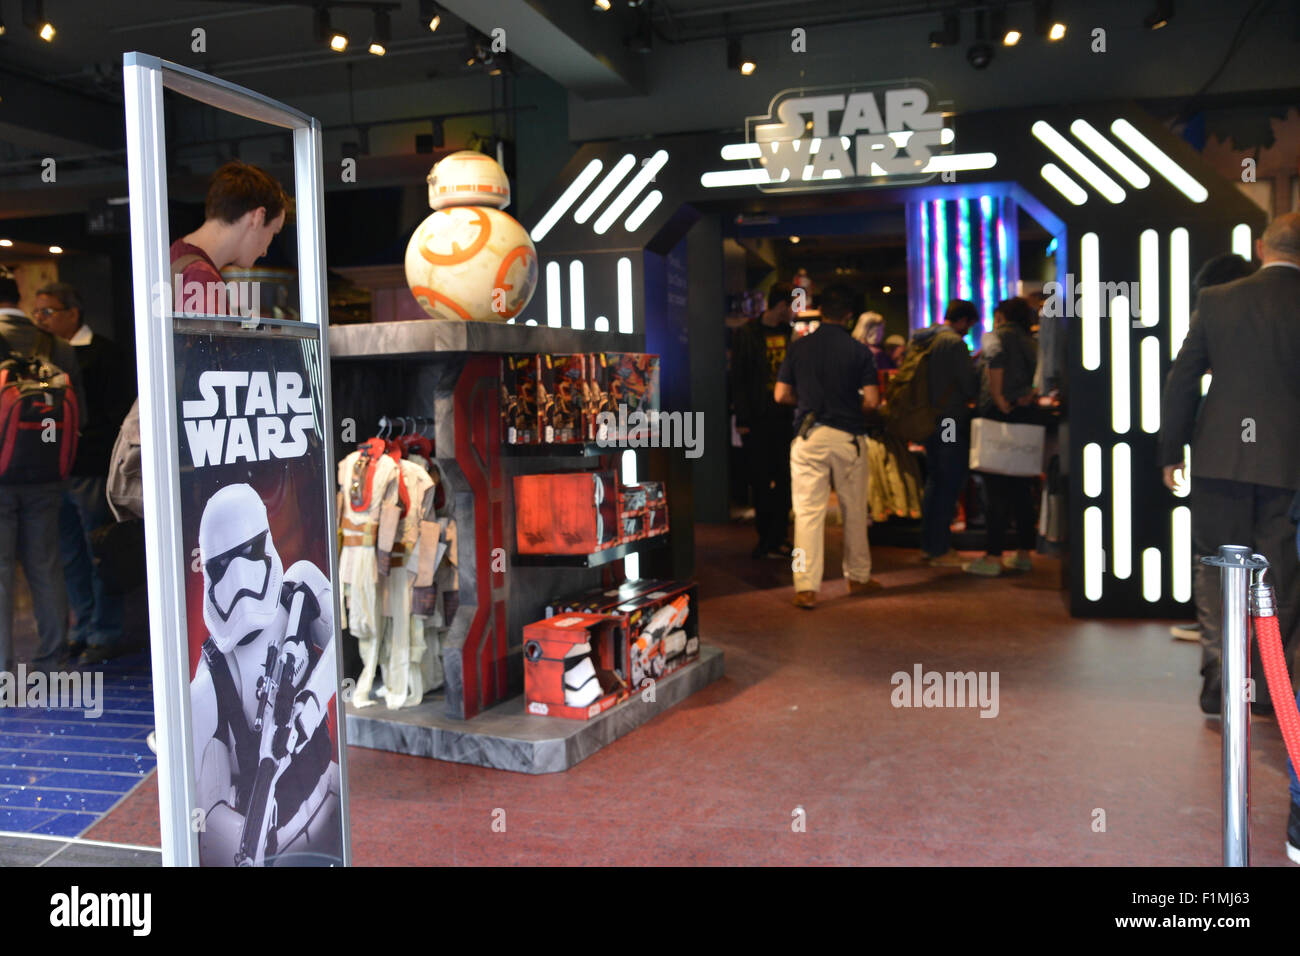 force friday star wars toys disney store london 4th september 2015 stock photo royalty free. Black Bedroom Furniture Sets. Home Design Ideas